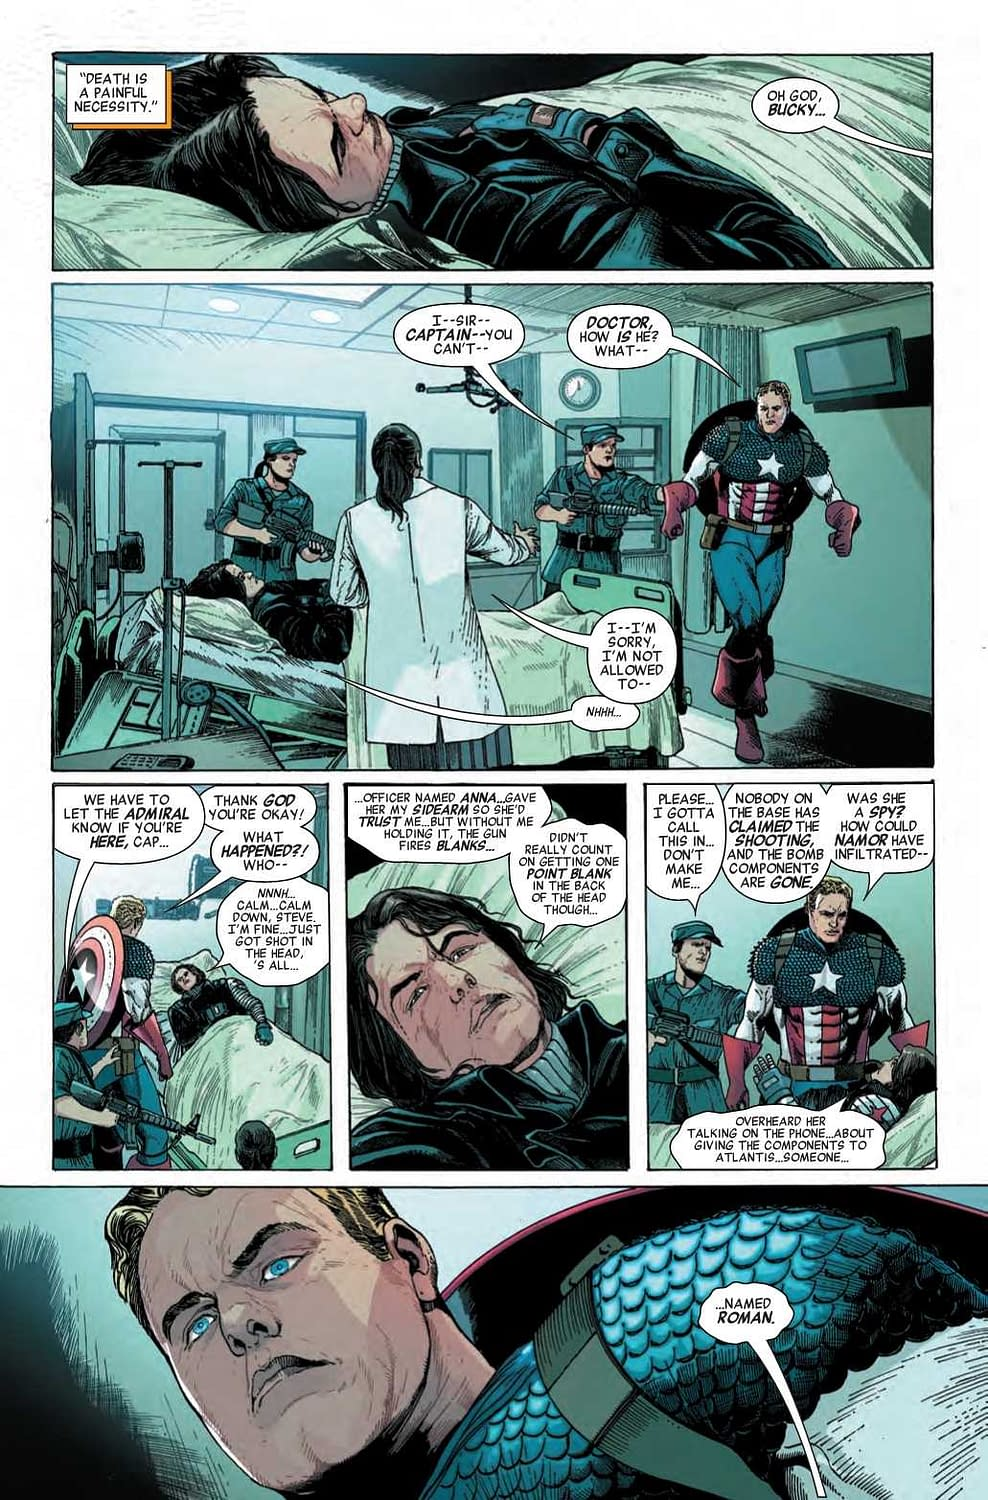 Namor Always Knew What to Do With Nazis (Invaders #5 Preview)